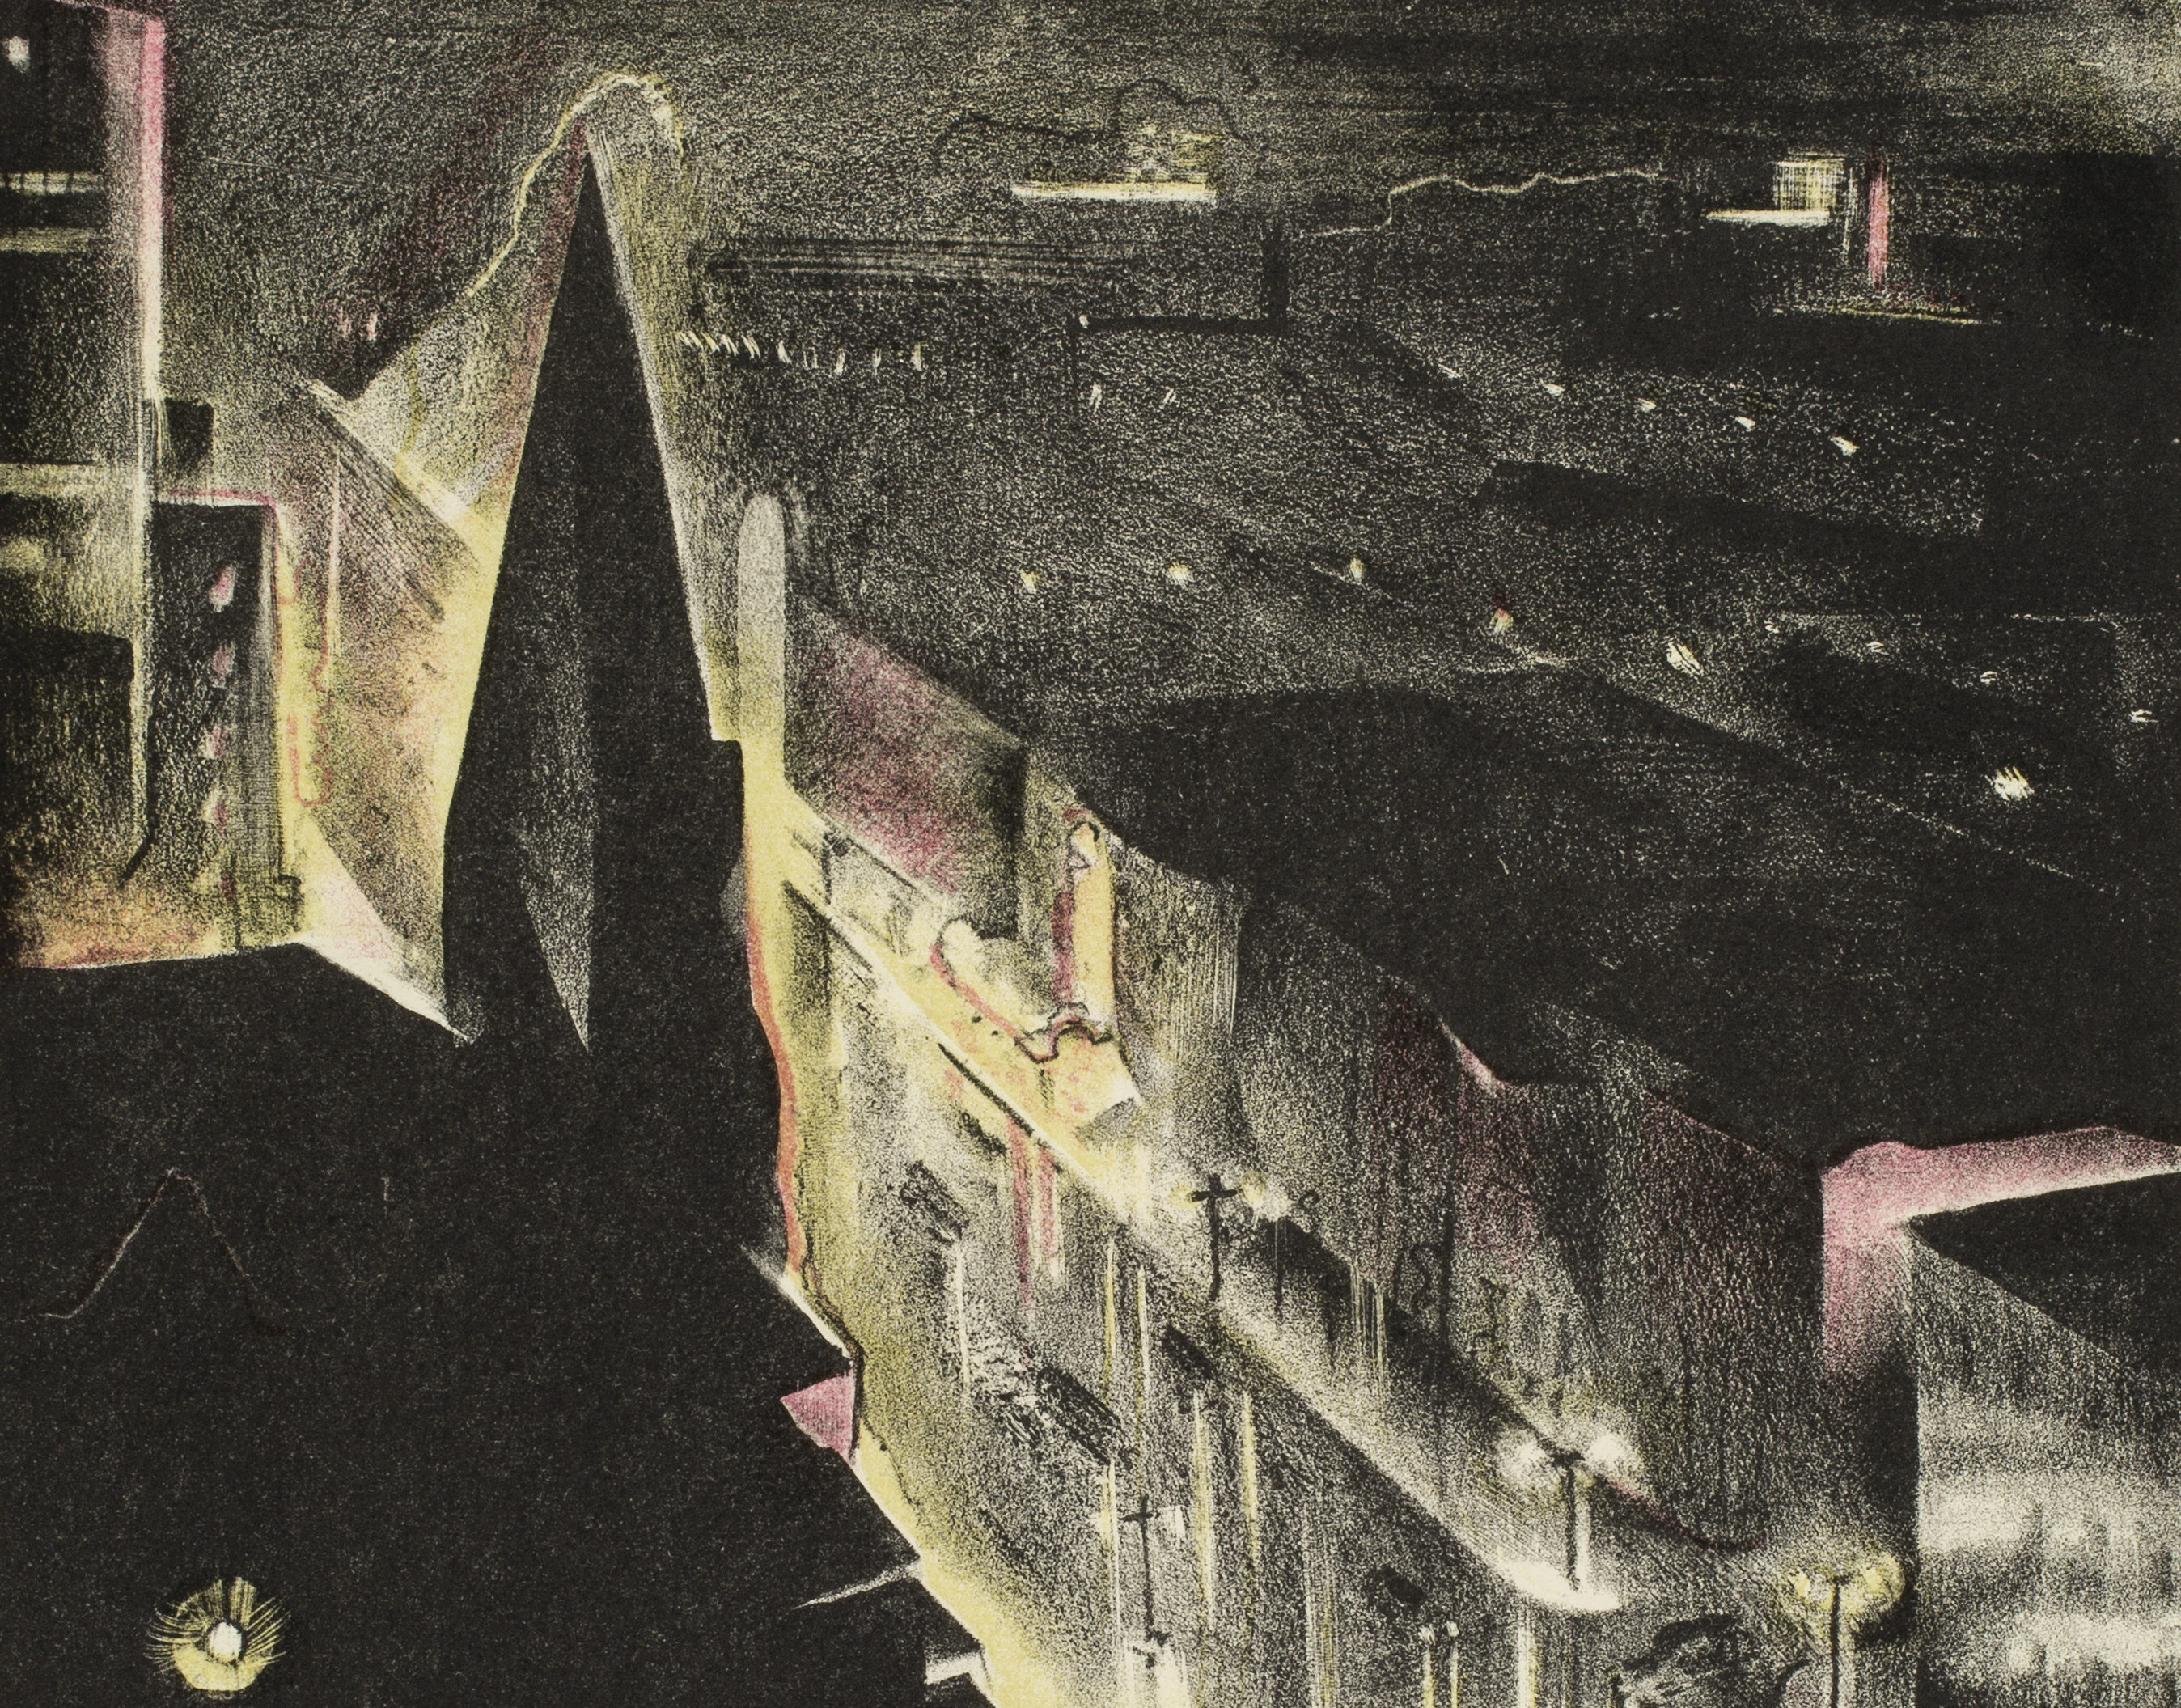 Benton Spruance (American, 1904-1967), City in the Rain (detail), 1932